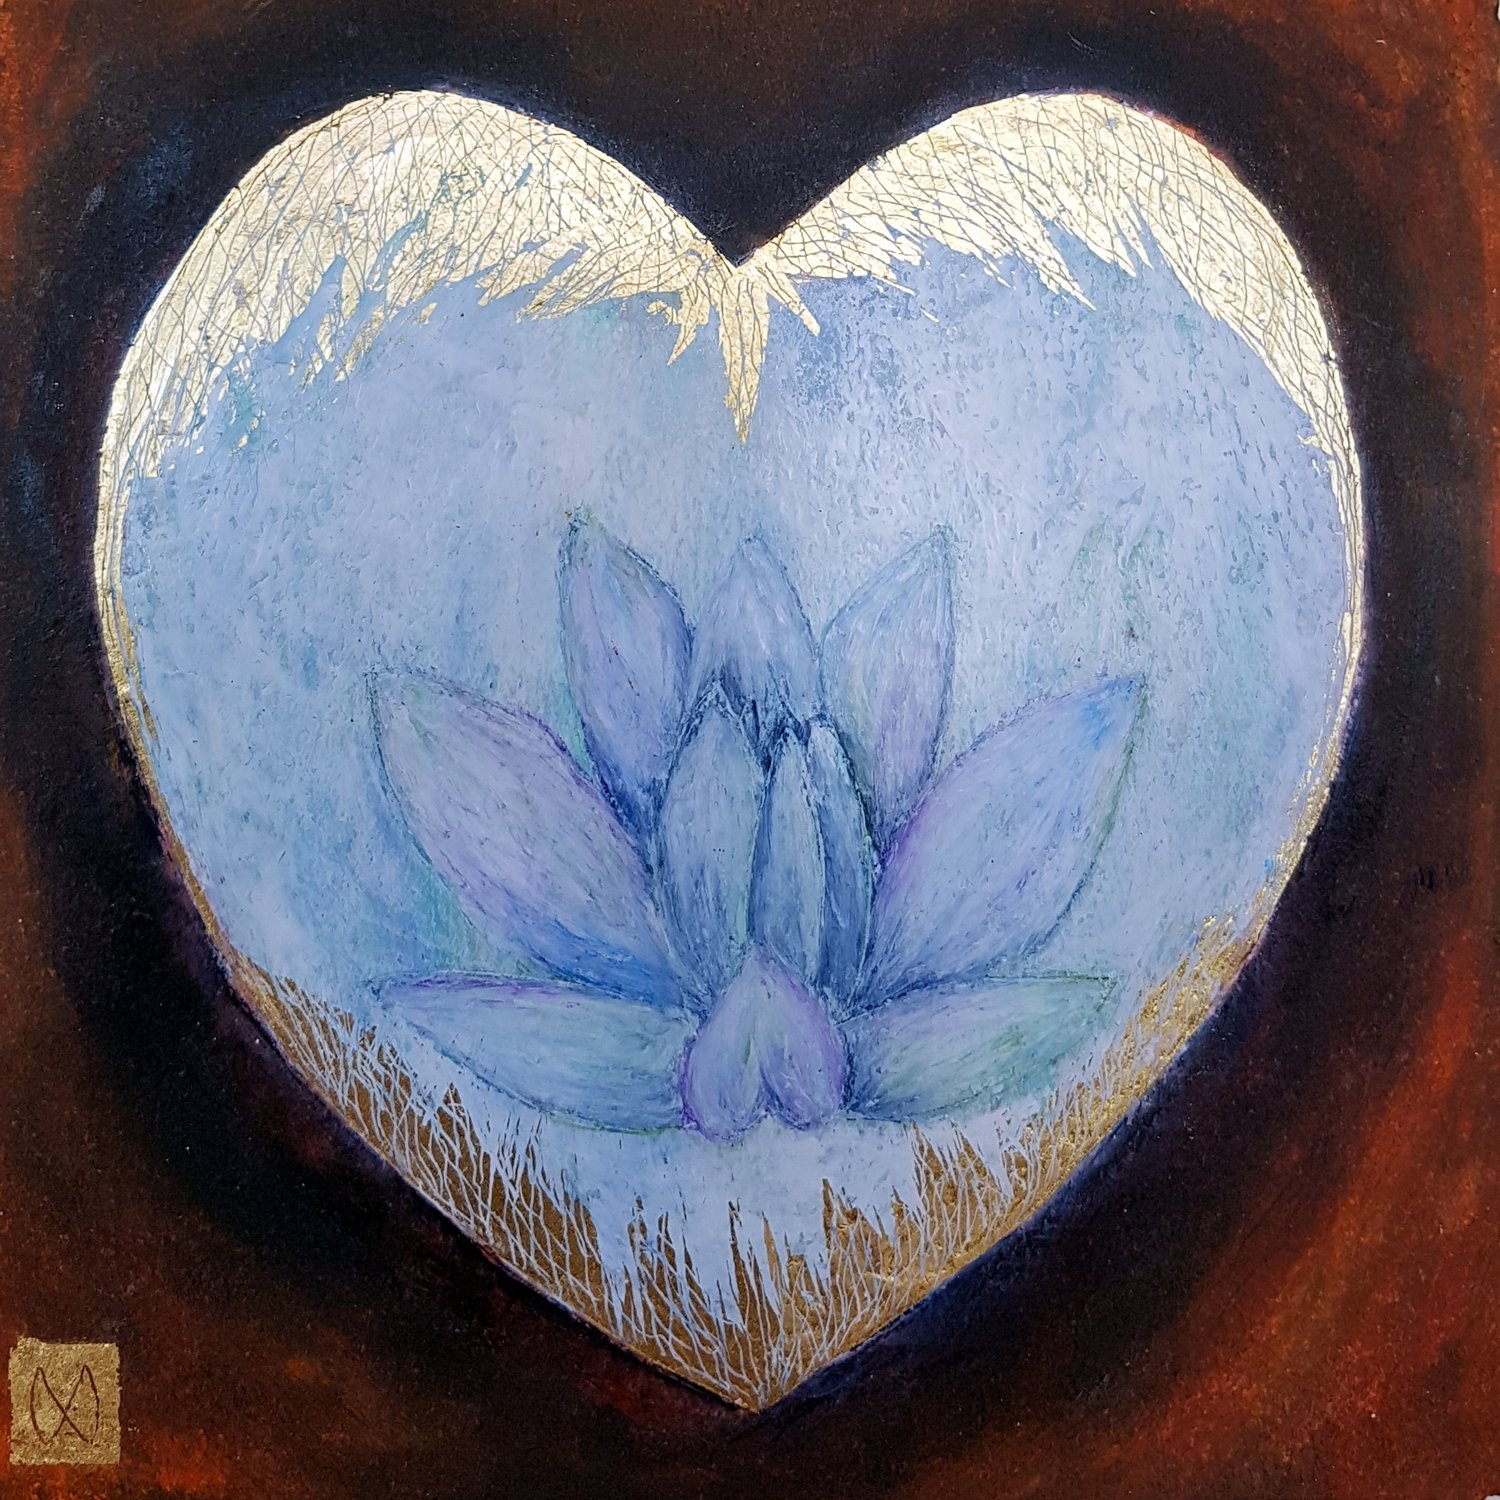 Lotus flower on heart shape with gold, gold leaf white blue aqua on burnt orange umber